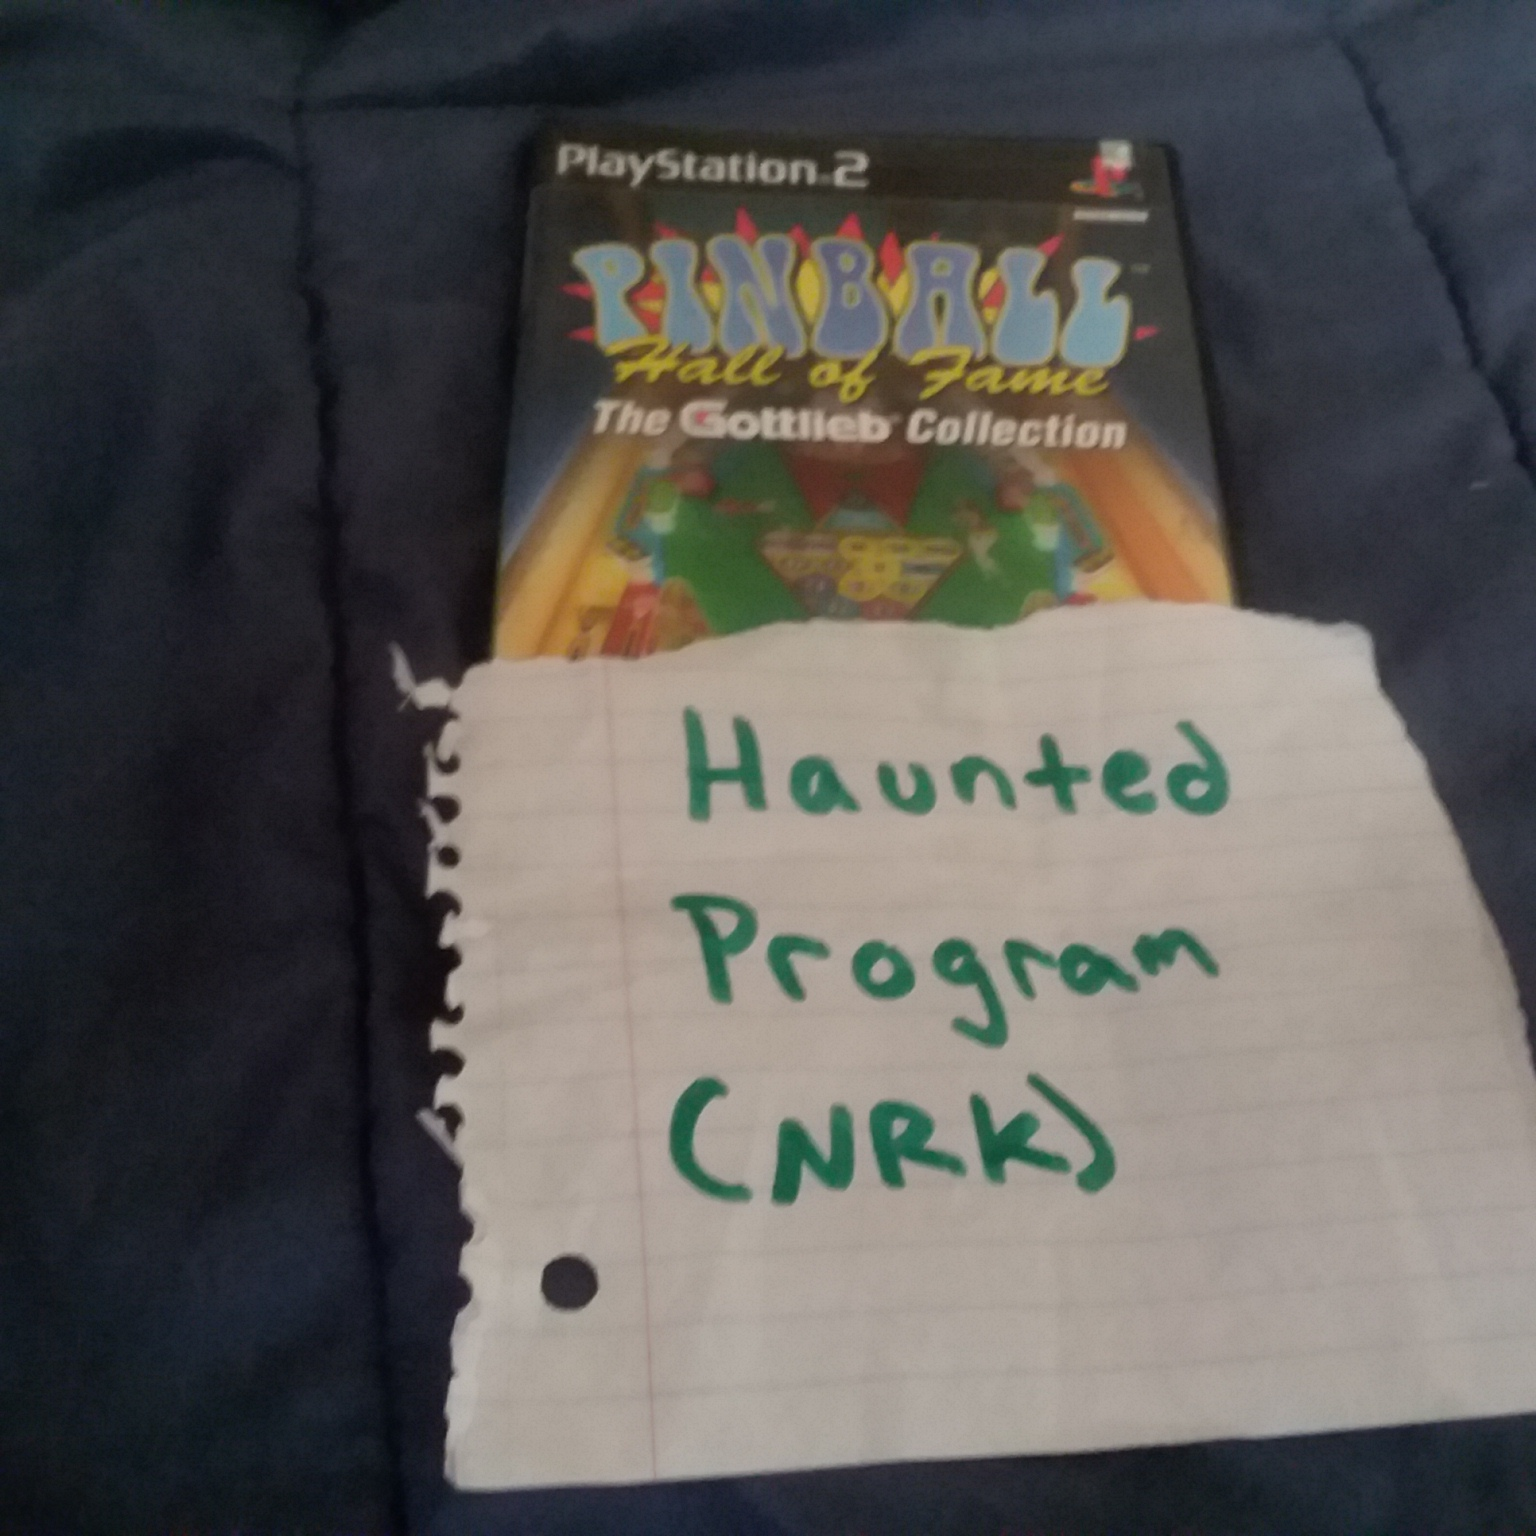 Hauntedprogram: Pinball Hall Of Fame: The Gottlieb Collection: Central Park [3 Balls] (Playstation 2) 325 points on 2020-11-11 15:28:24